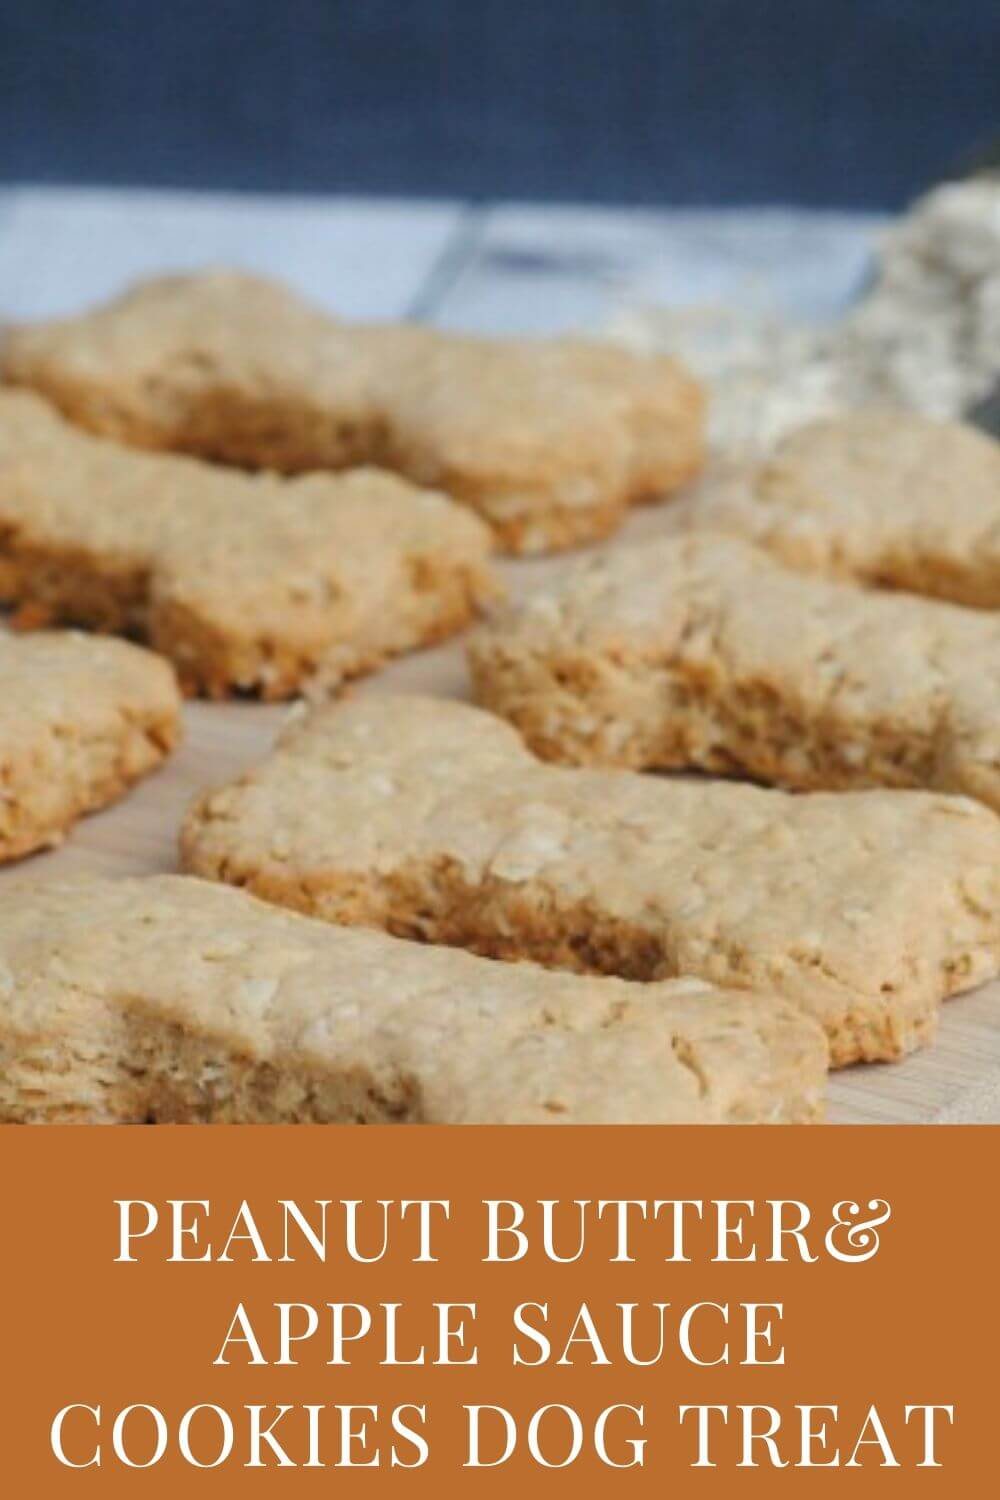 Peanut Butter and Apple Sauce Cookies